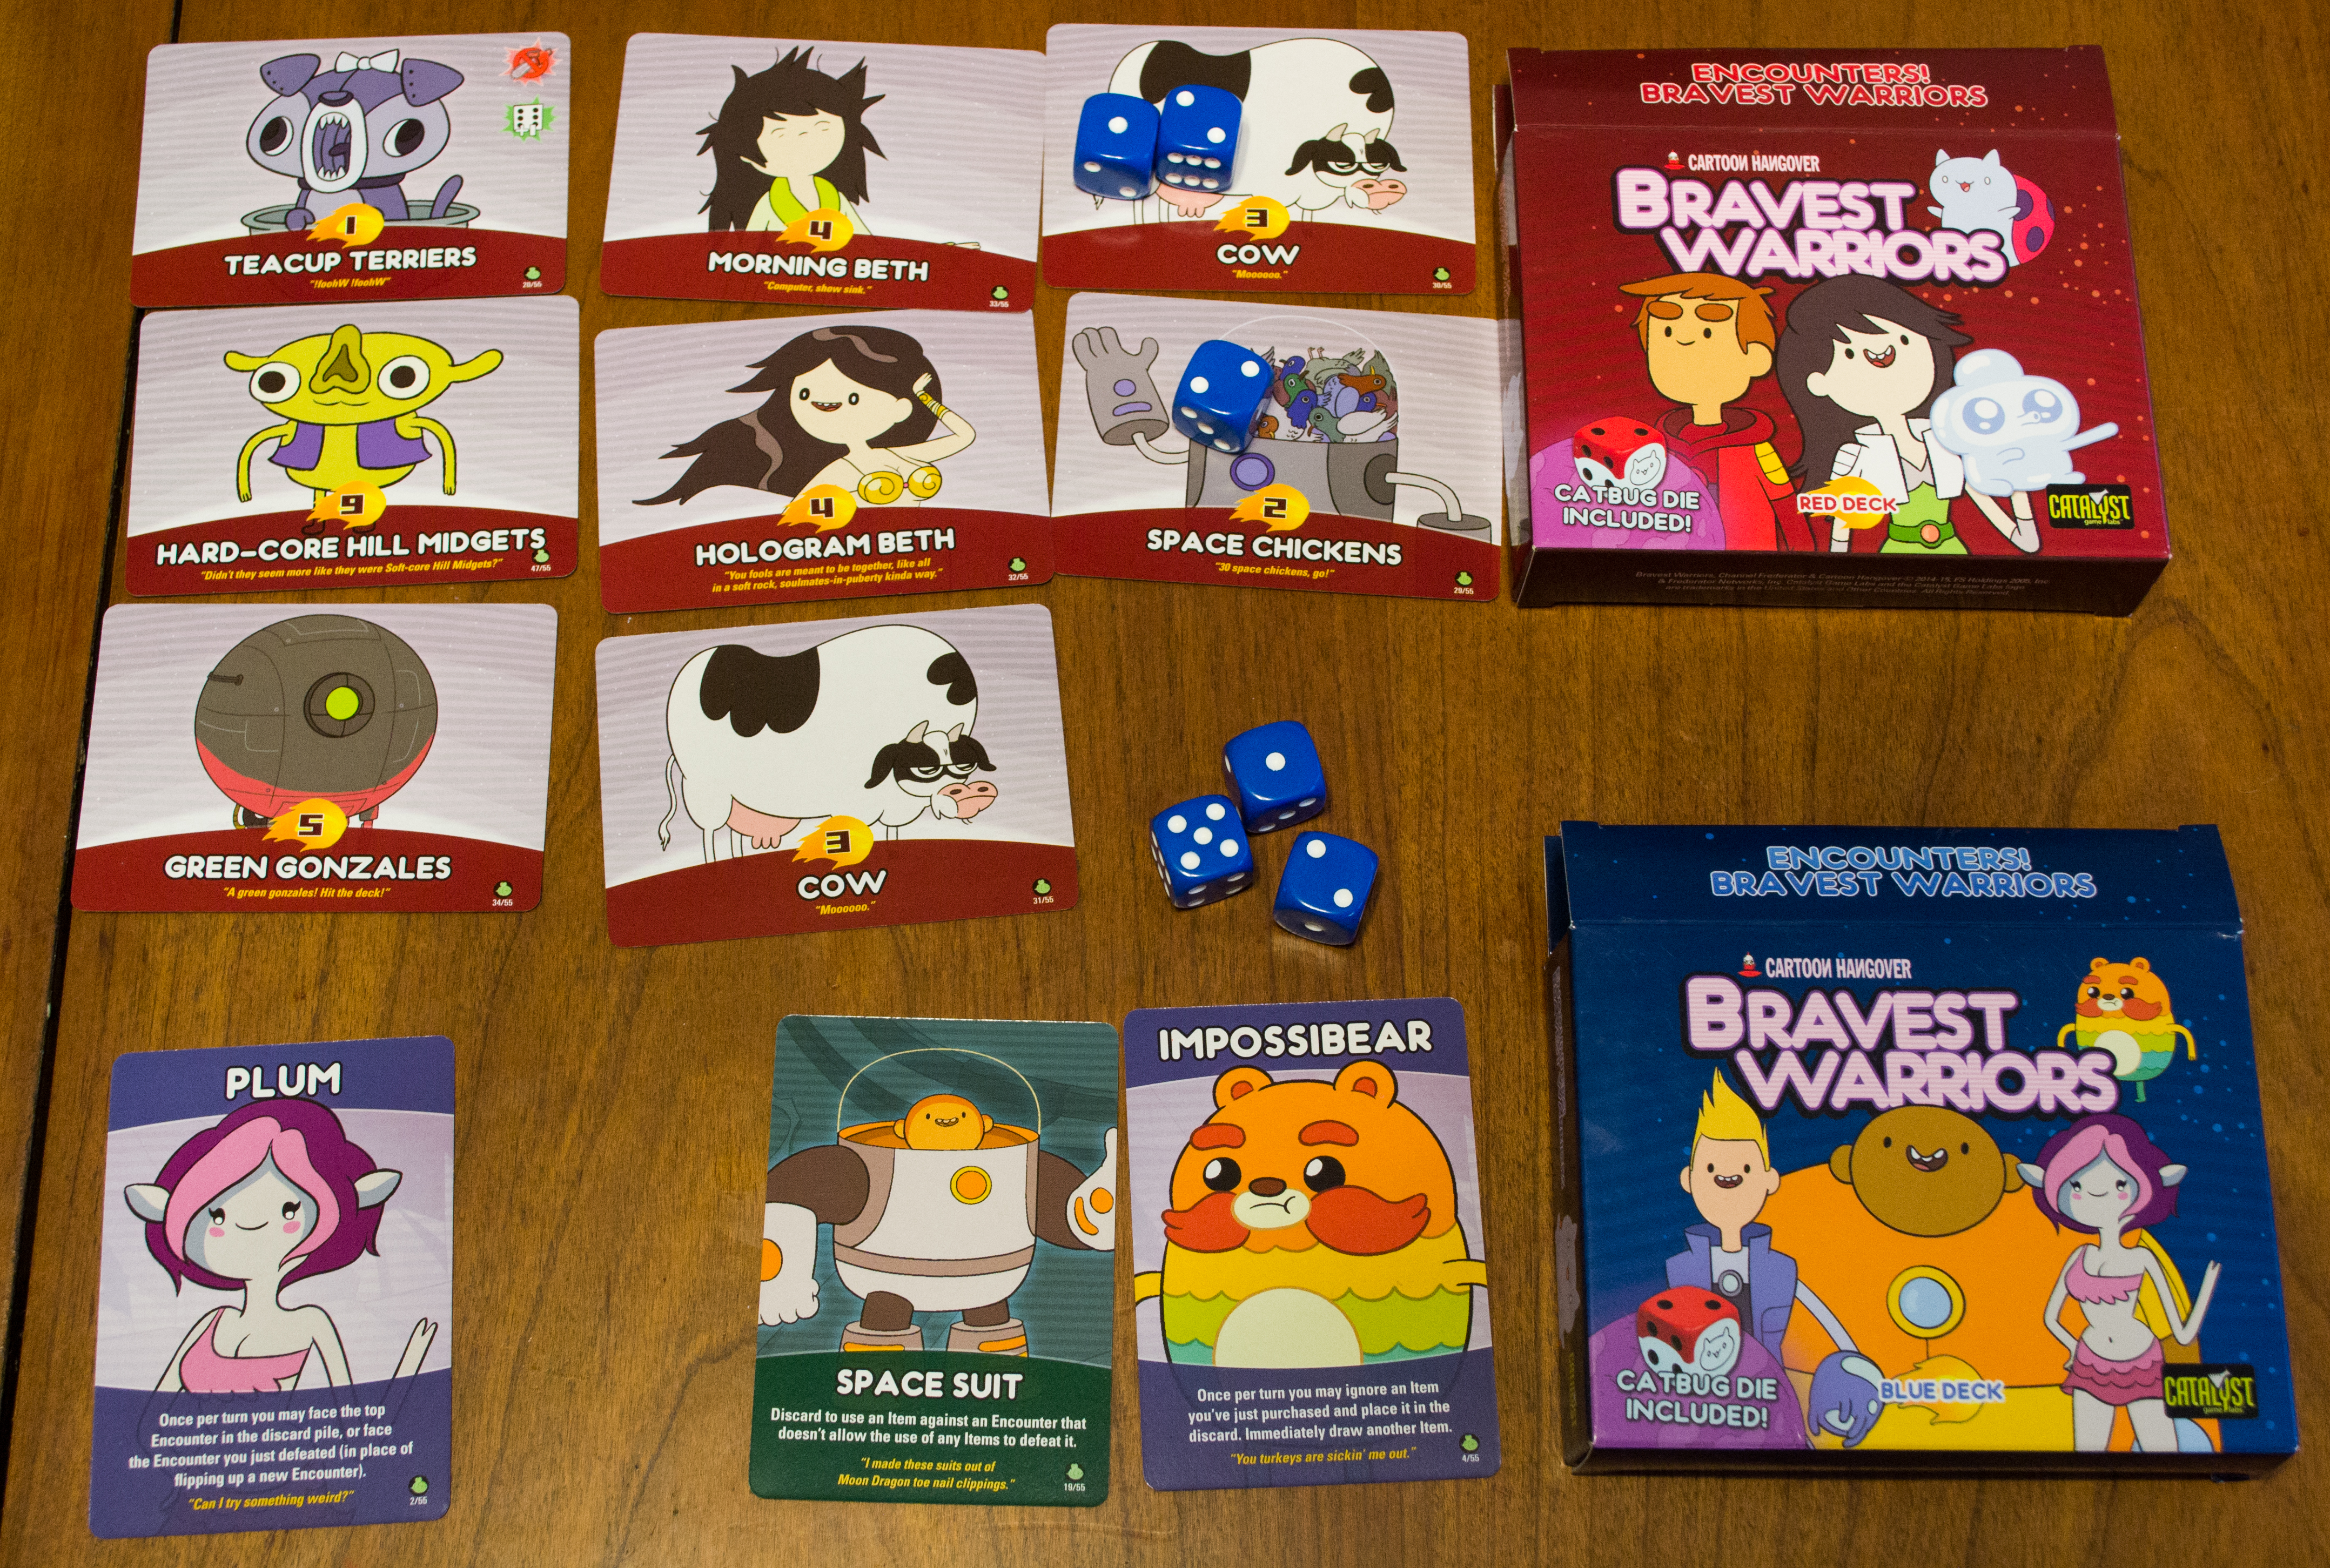 Encounters: Bravest Warriors - 1-4 Players, Ages 12+, Average Play Time = 15-30 Minutes